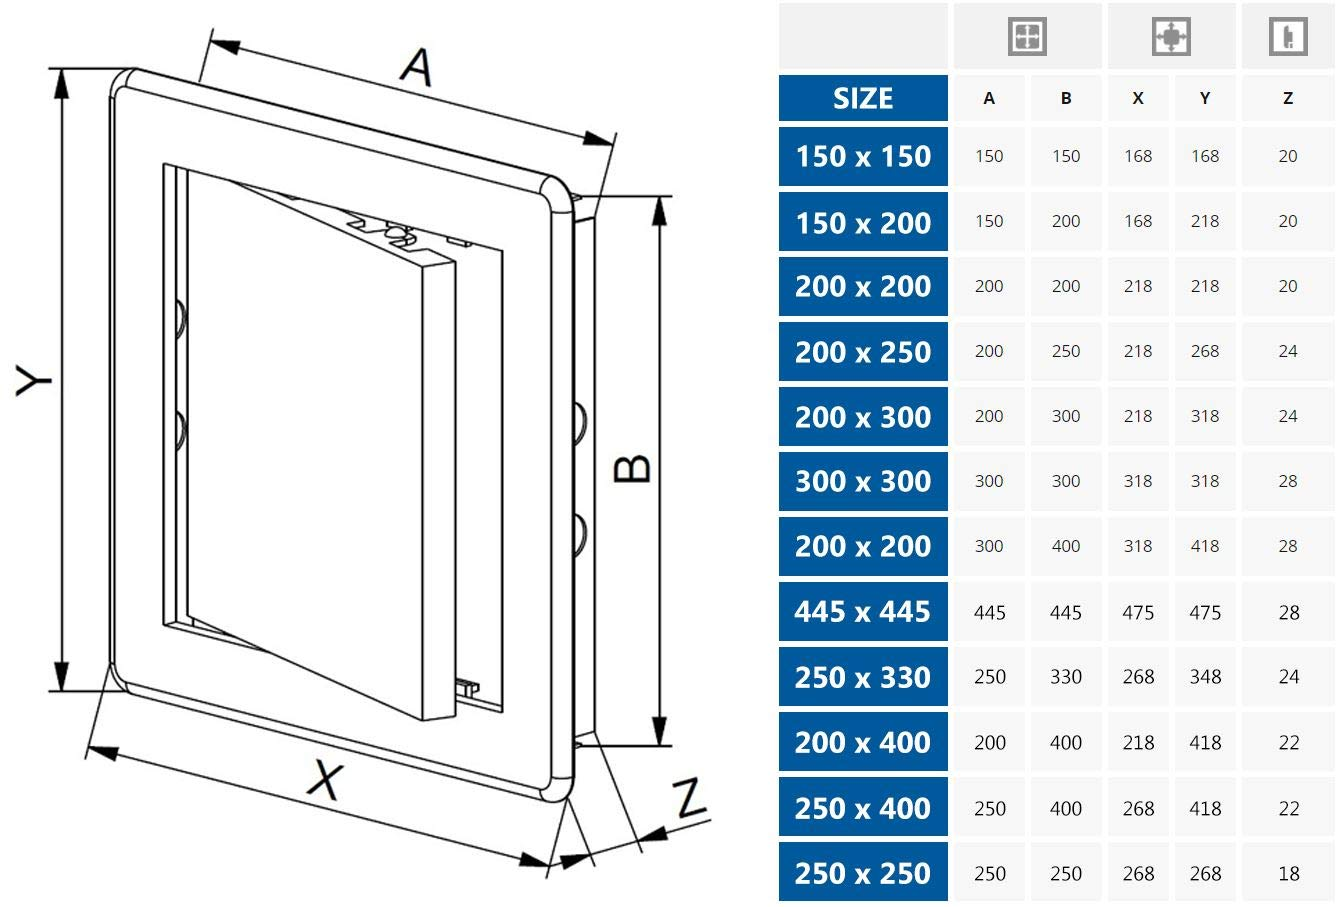 Access Panel 150x150mm (6x6inch) White ABS Plastic by Awenta